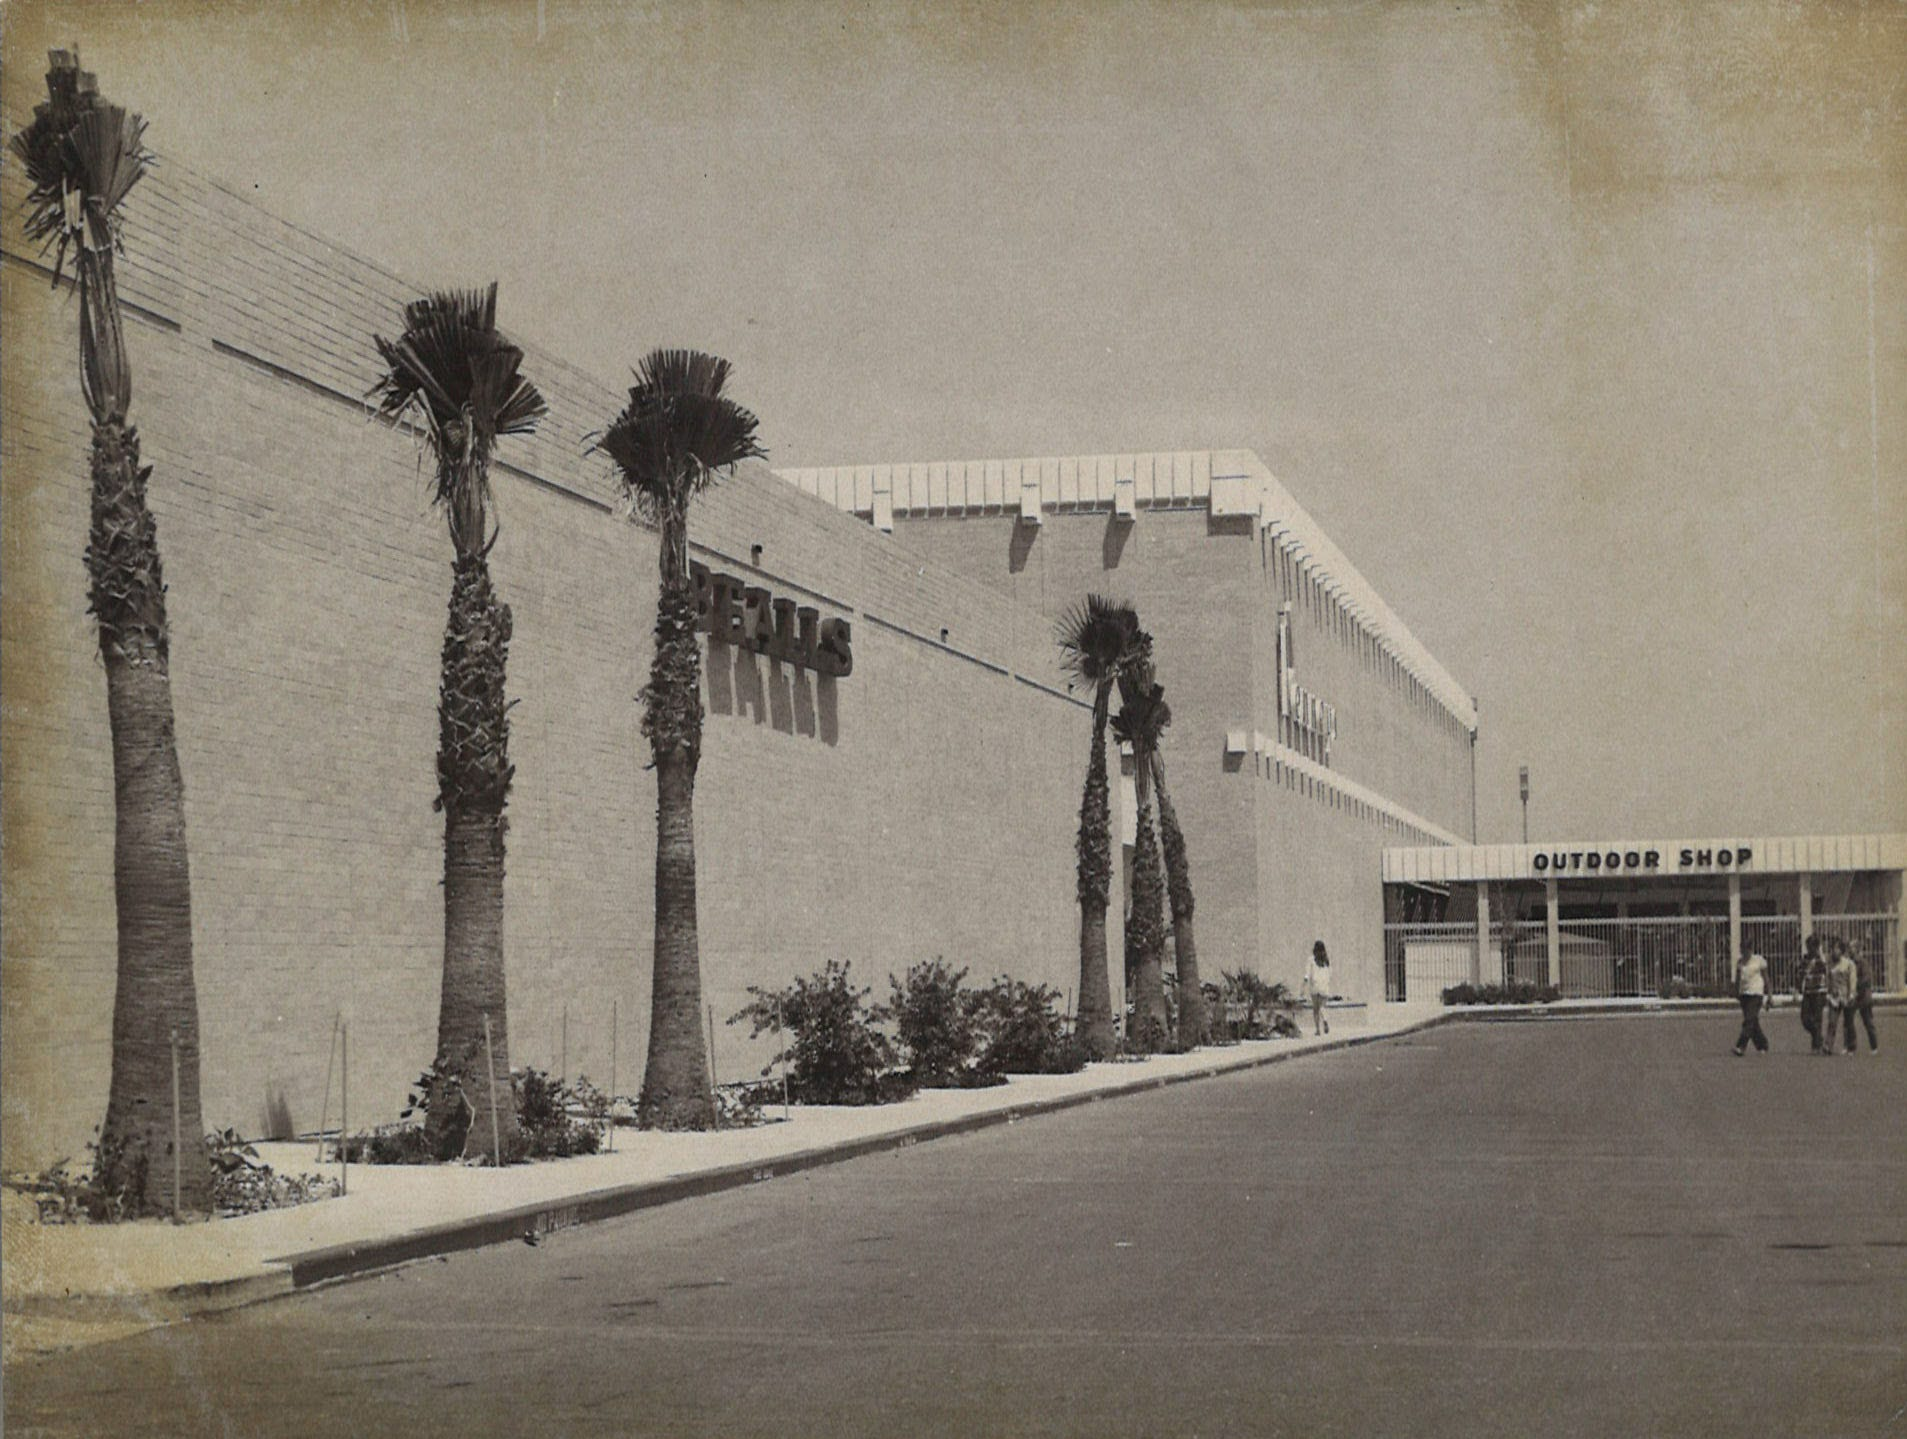 Outside of Bealls at Padre Staples Mall in Corpus Christi on July 29, 1970. The mall's grand opening was July 30, 1970.